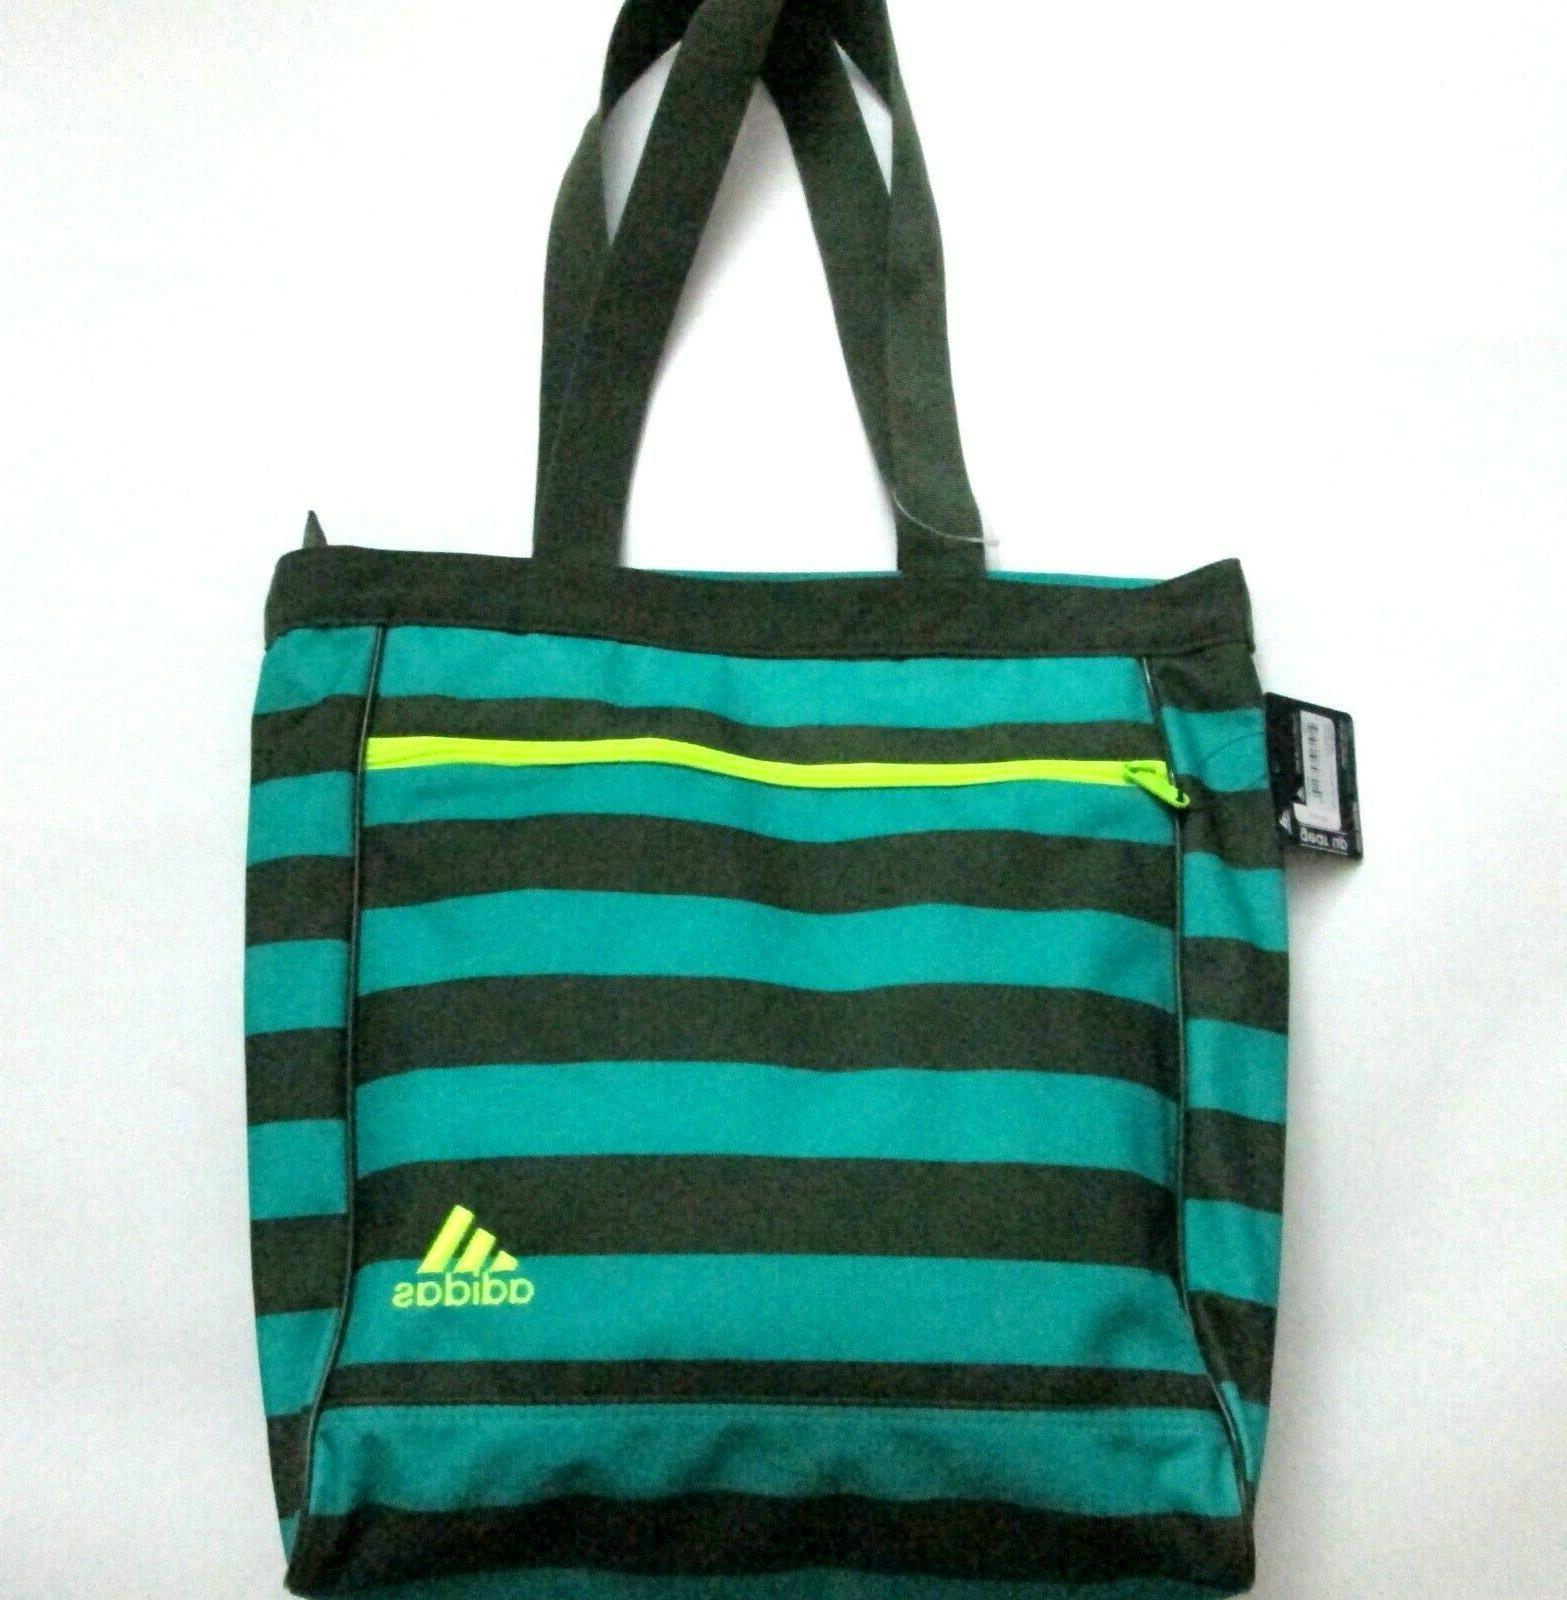 adidas Women's Studio Club Bag, 16 x 13 1/4 x 4 1/2-Inch, Ru